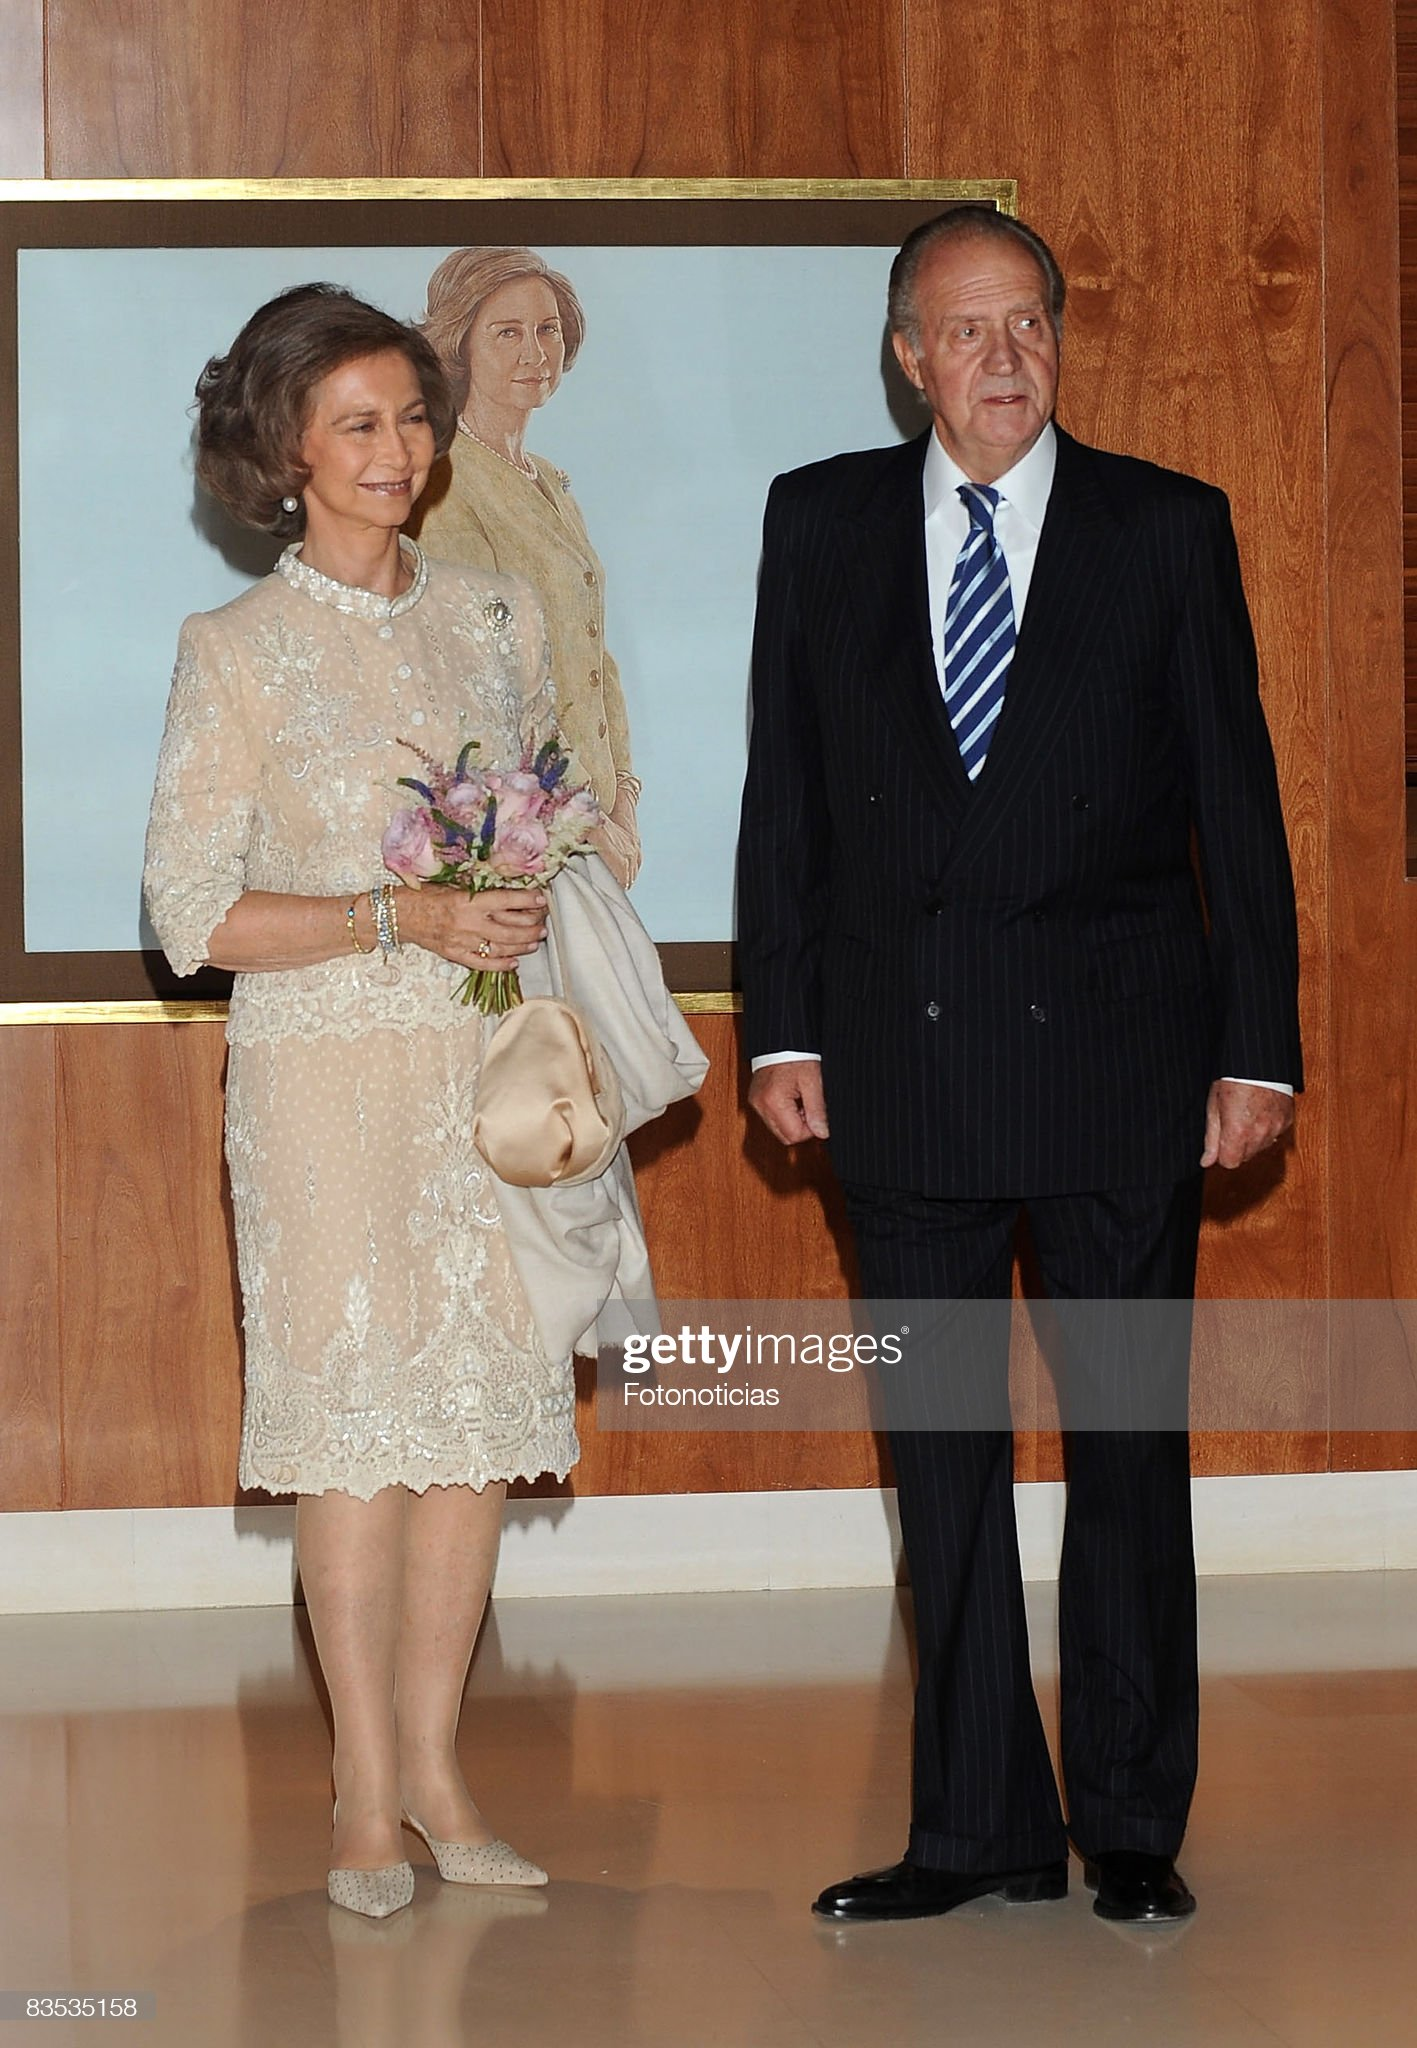 Queen Sofia Celebrates Her 70th At Her School of Music Opening Concert : News Photo